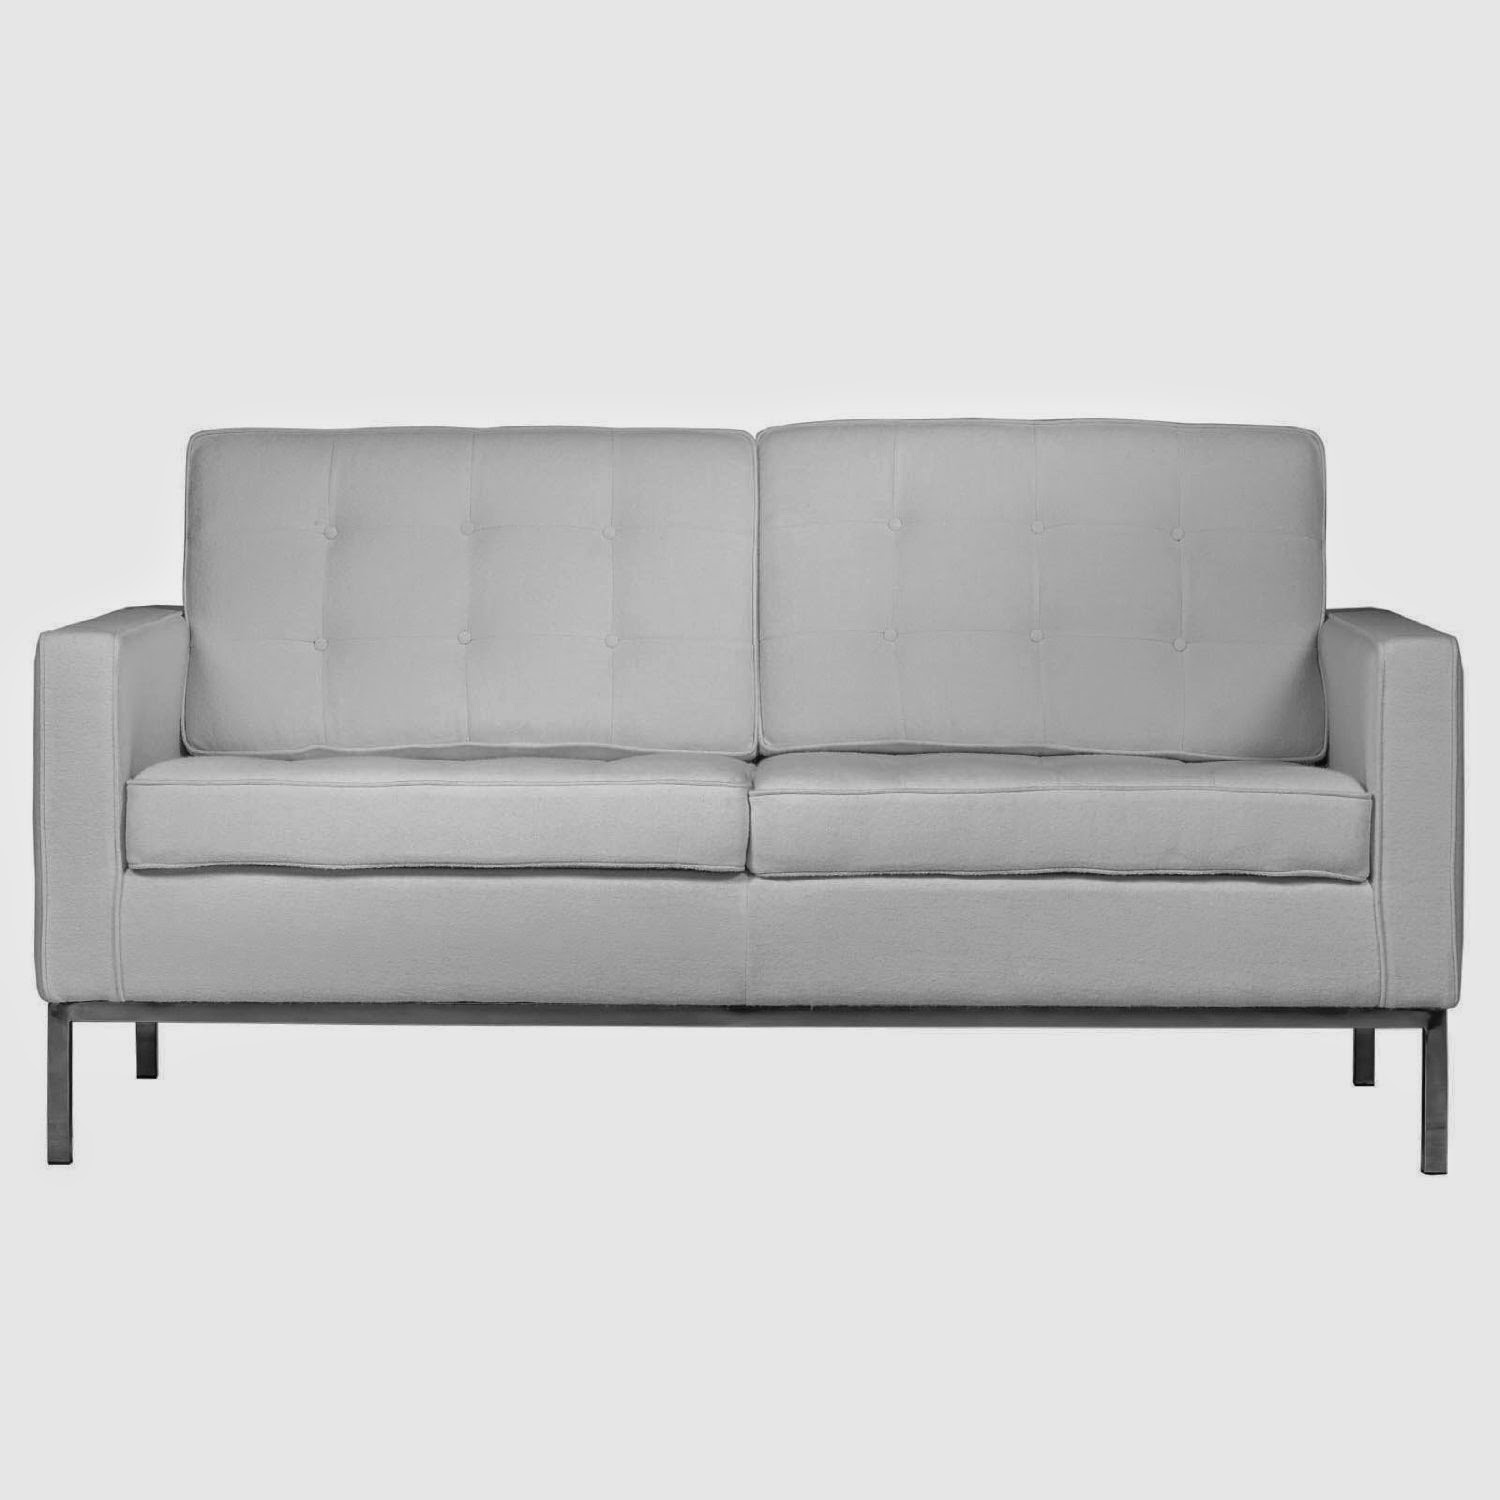 Small Sleeper Sofa Large Size Of Sofas Centersmall Sleeper Sofa Loveseat La Z Boy Ikea Pull Out